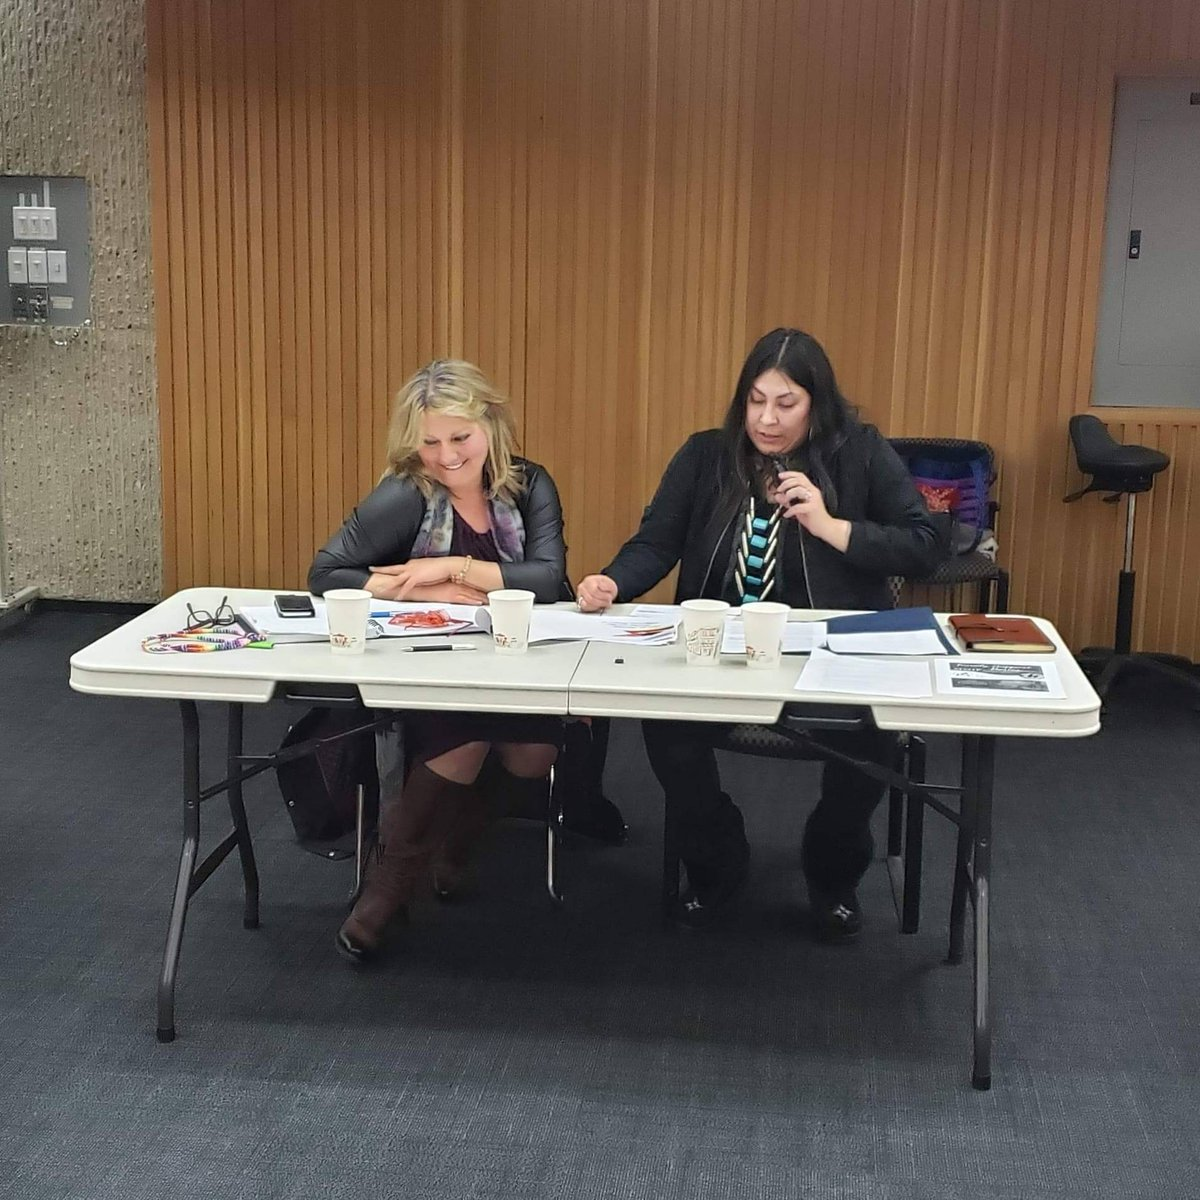 Thursdays powerful talk saw MMIWG survivor Stephanie Harpe and lawyer Lisa Weber discuss the victimization of indigenous women by the Justice system. We are so thankful to these speakers for sharing and SINGING for attendees of #ILSASpeakerSeries2020